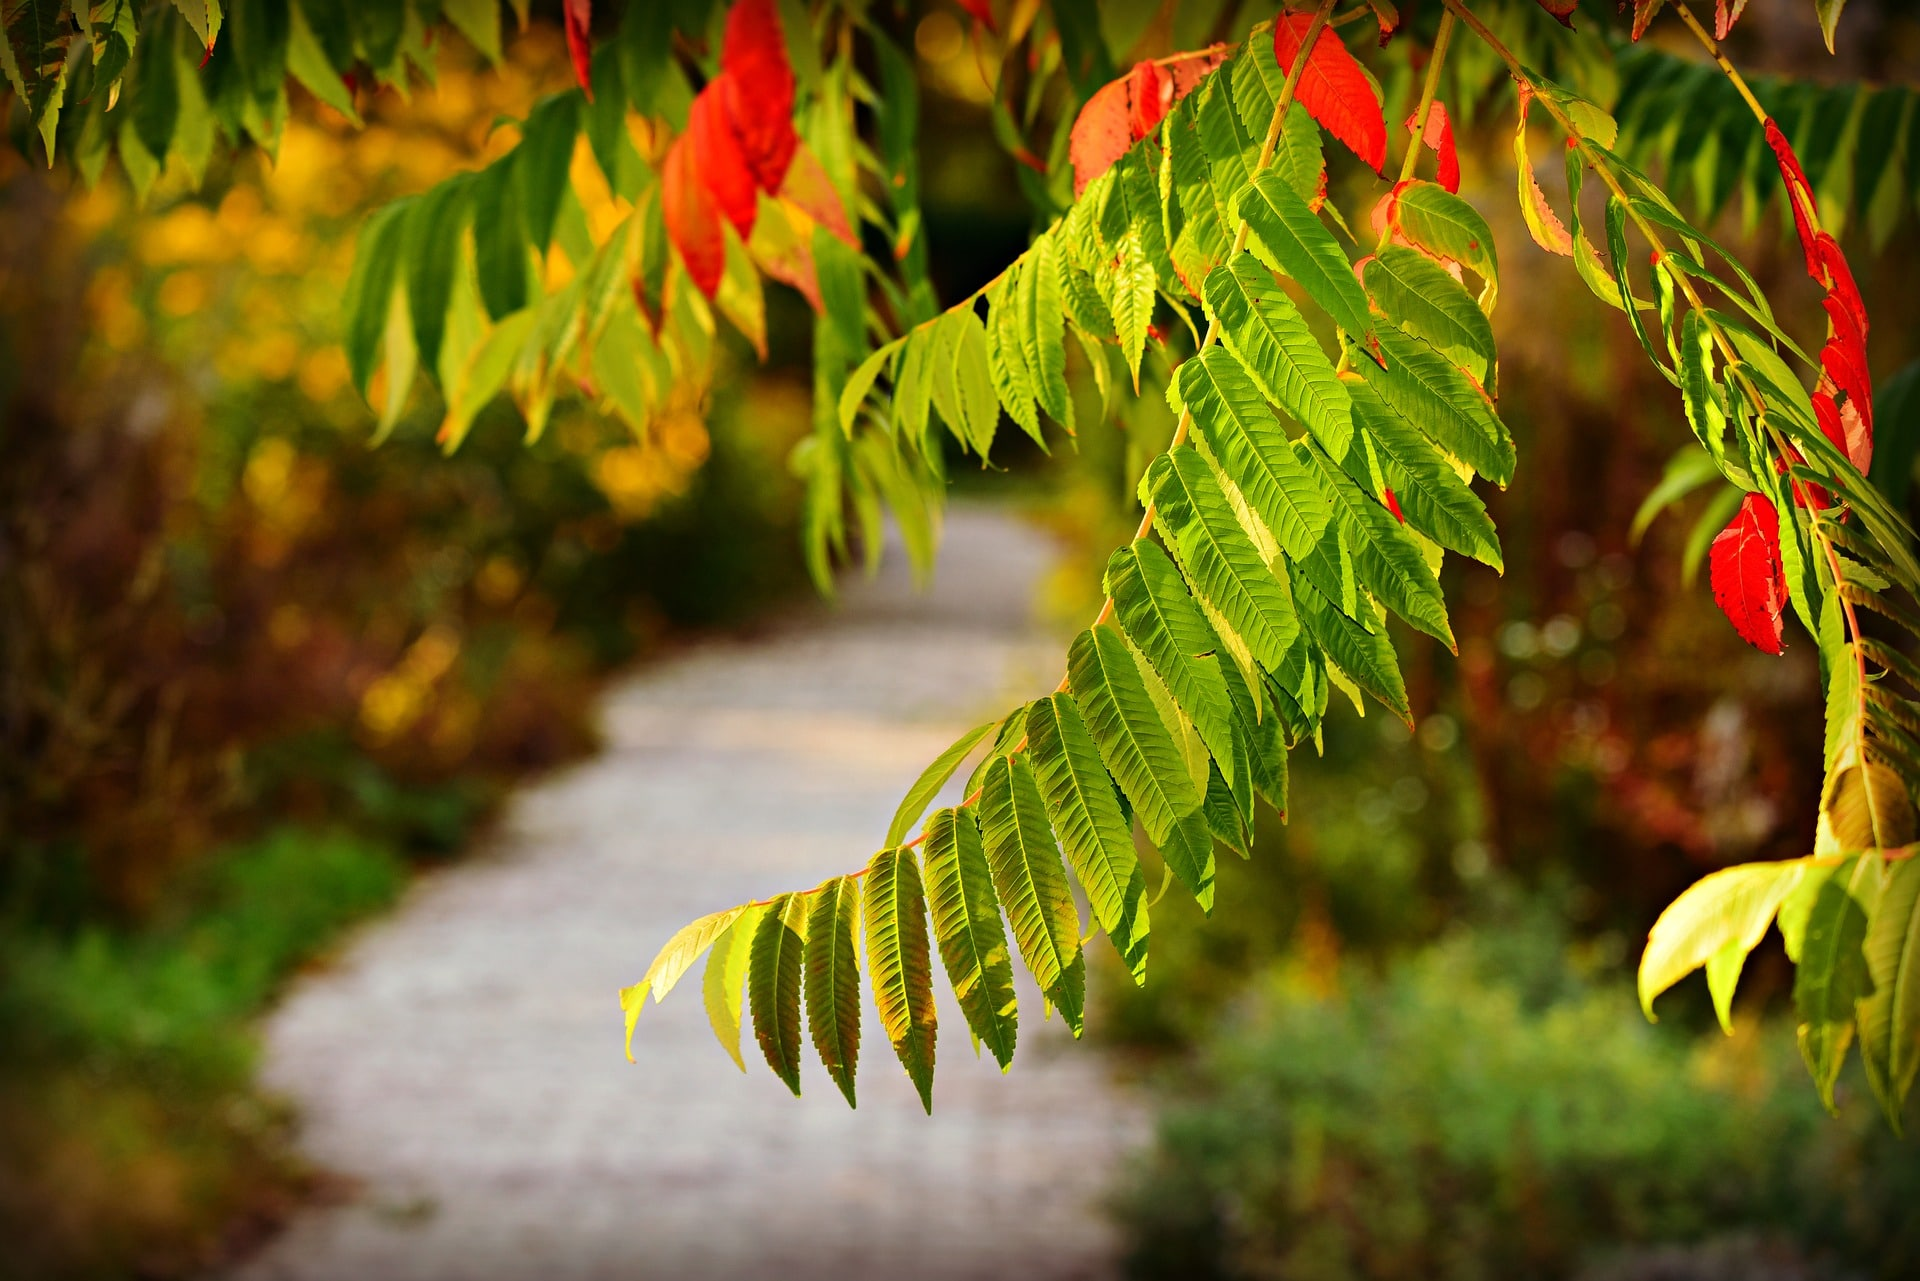 Tree leaves along pathway